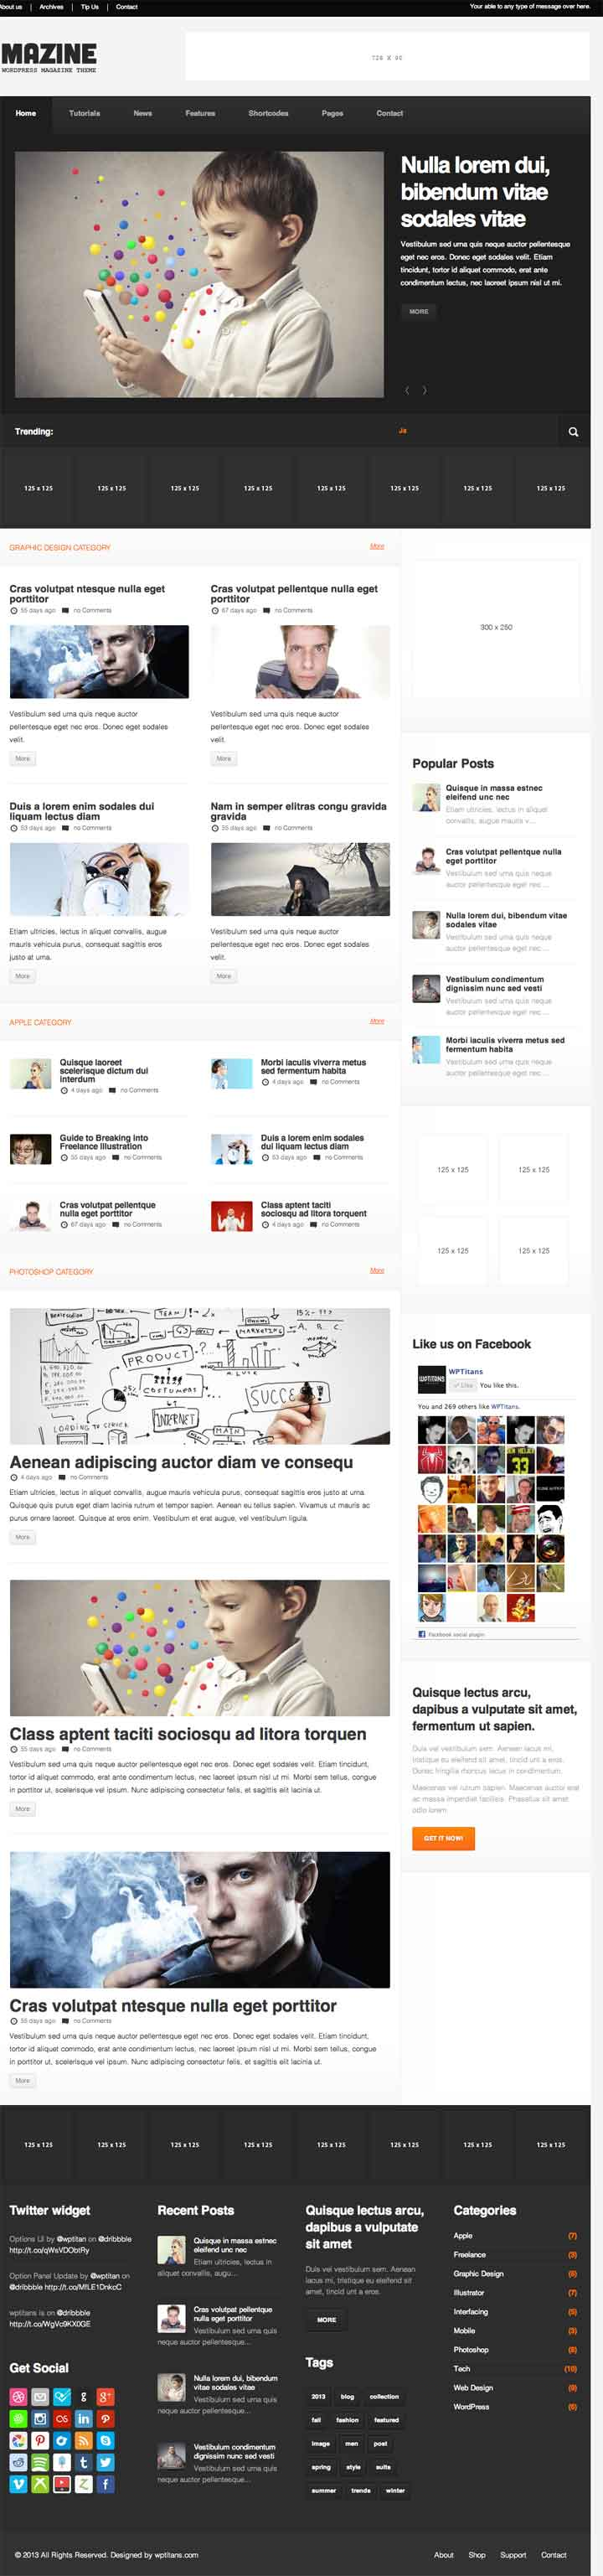 Responsive magzine wordpress theme